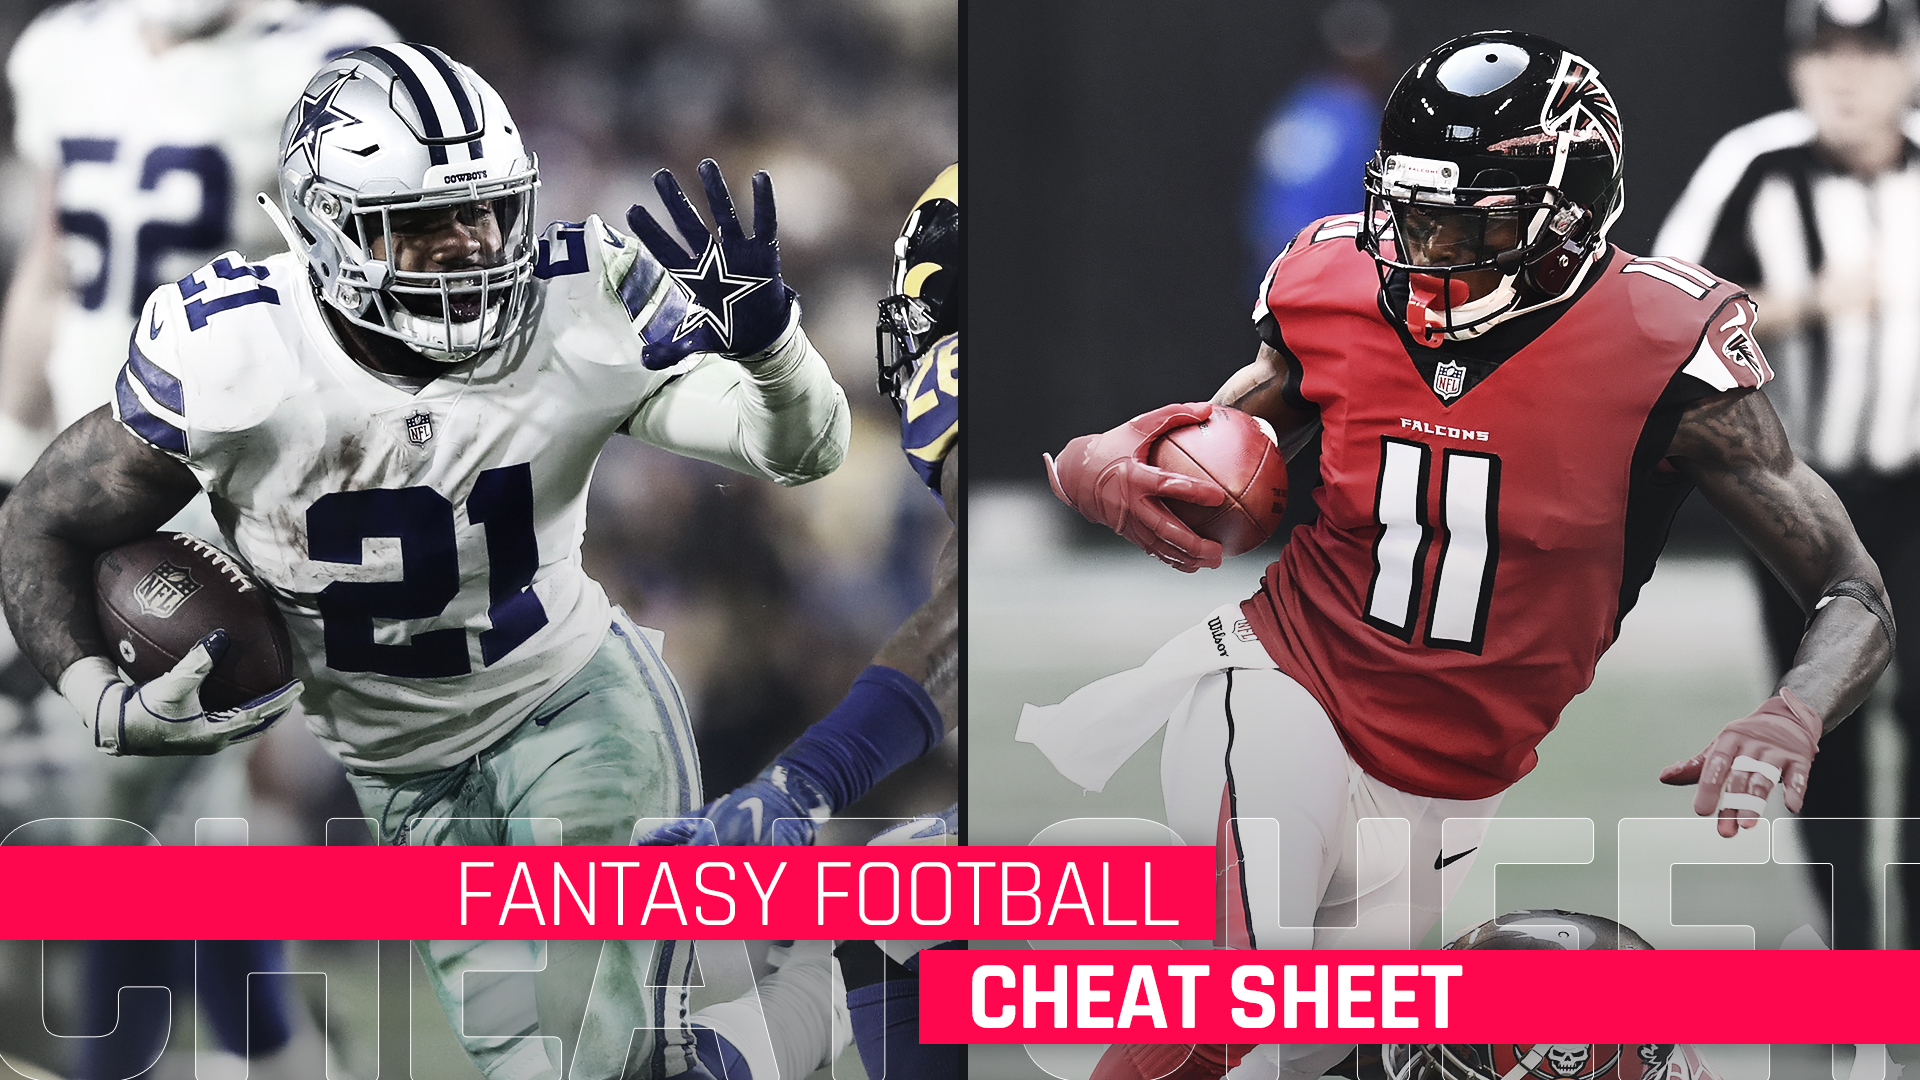 2019 Fantasy Football cheat sheet, rankings, sleepers, team names